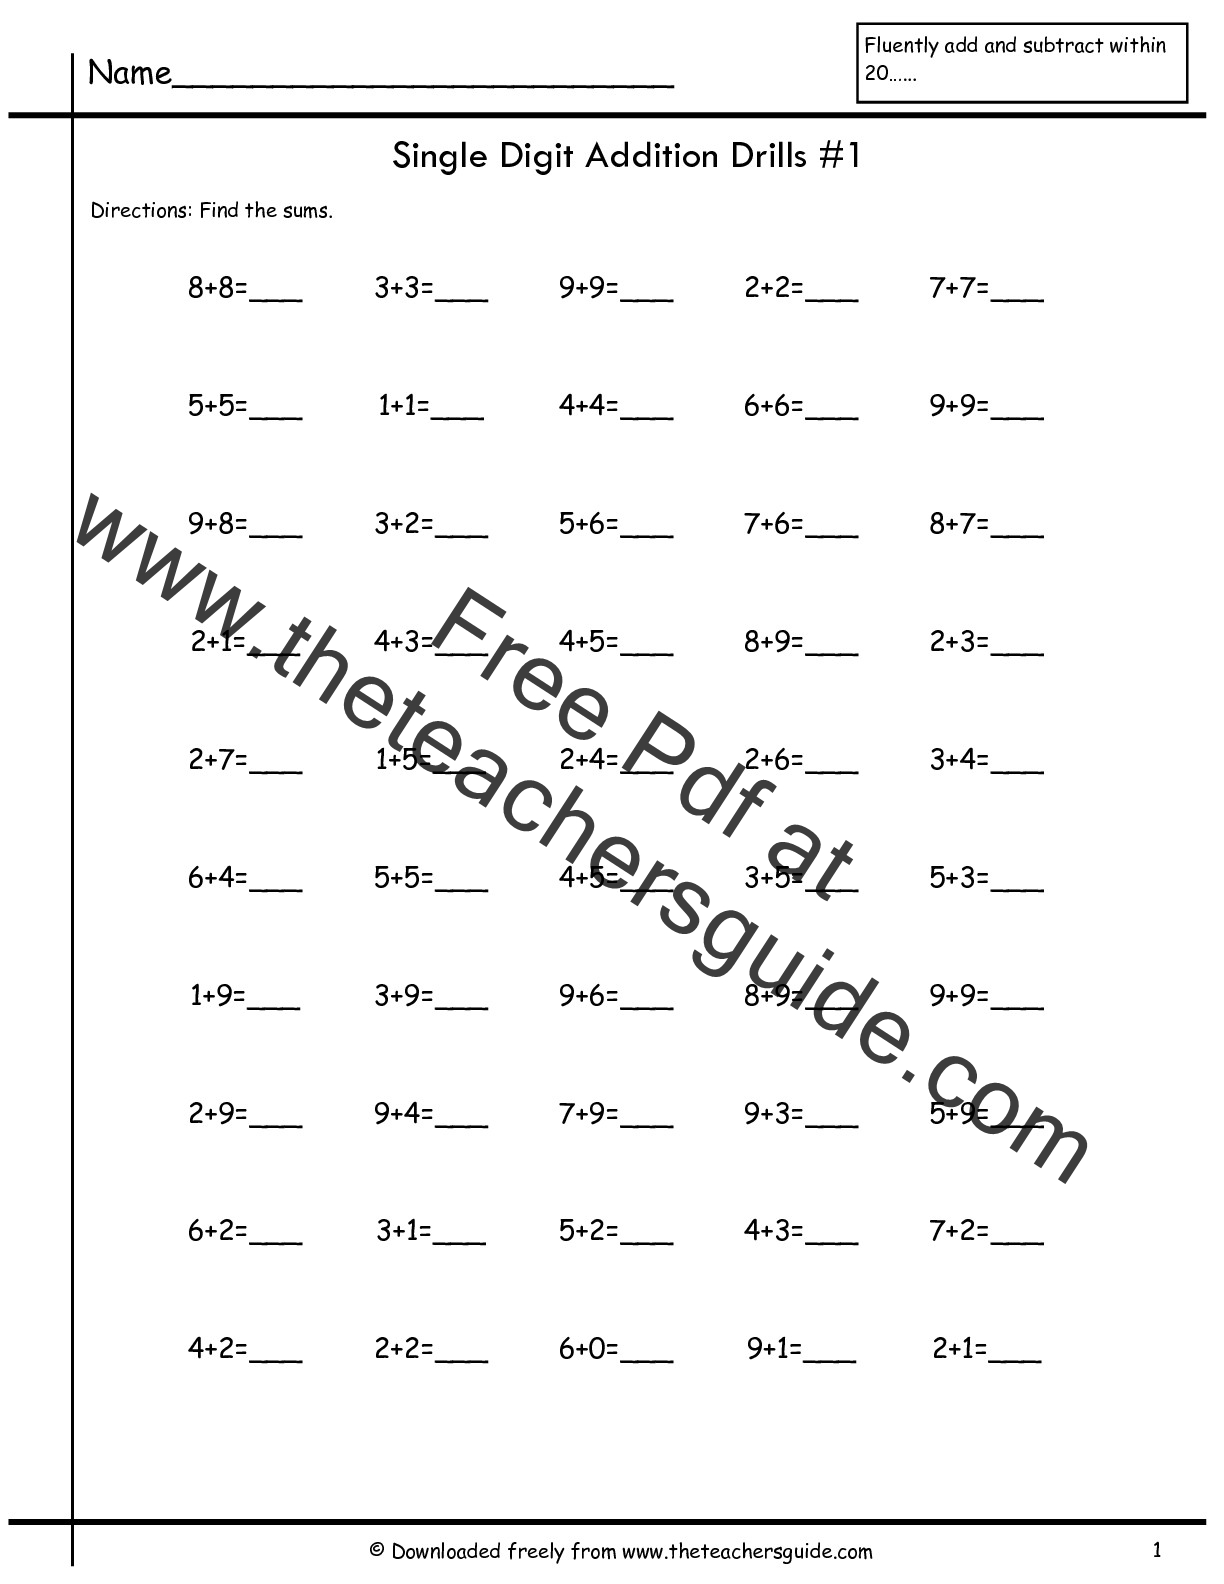 Single Digit Addition Fluency Drills From The Teacher S Guide